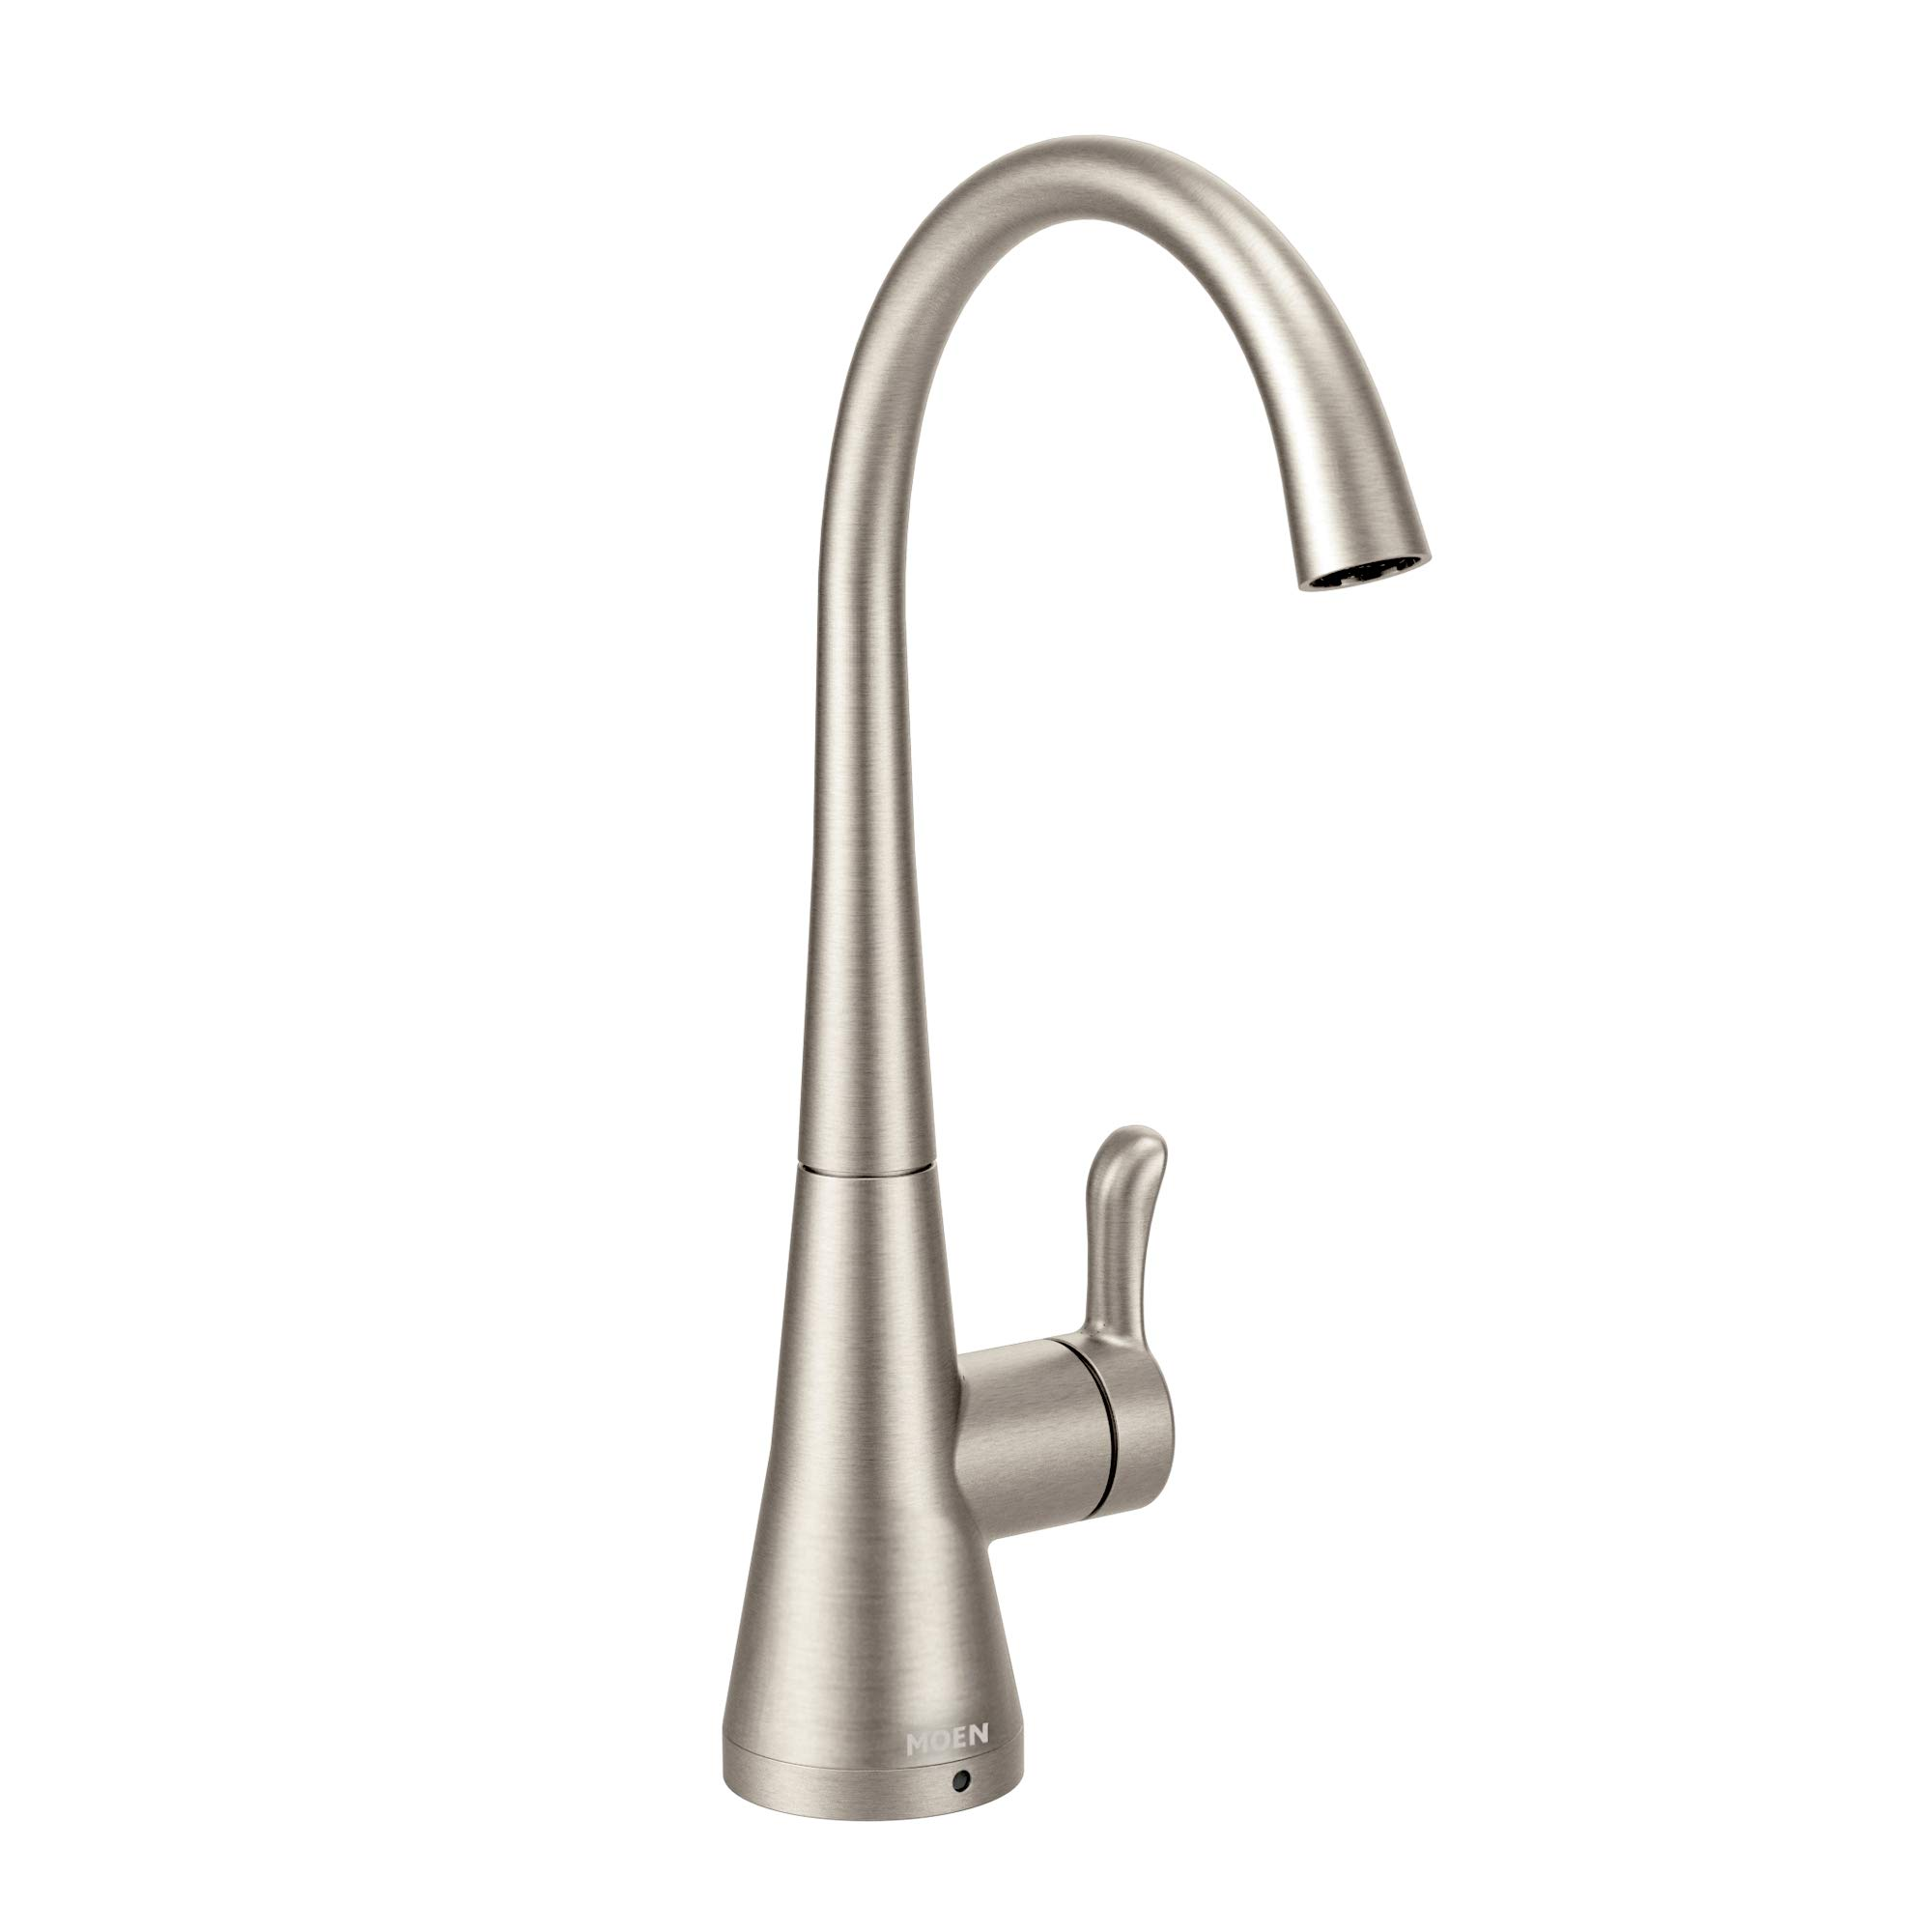 Moen S5520SRS Sip Transitional Cold Water Kitchen Beverage Faucet with Optional Filtration System, Spot Resist Stainless by Moen